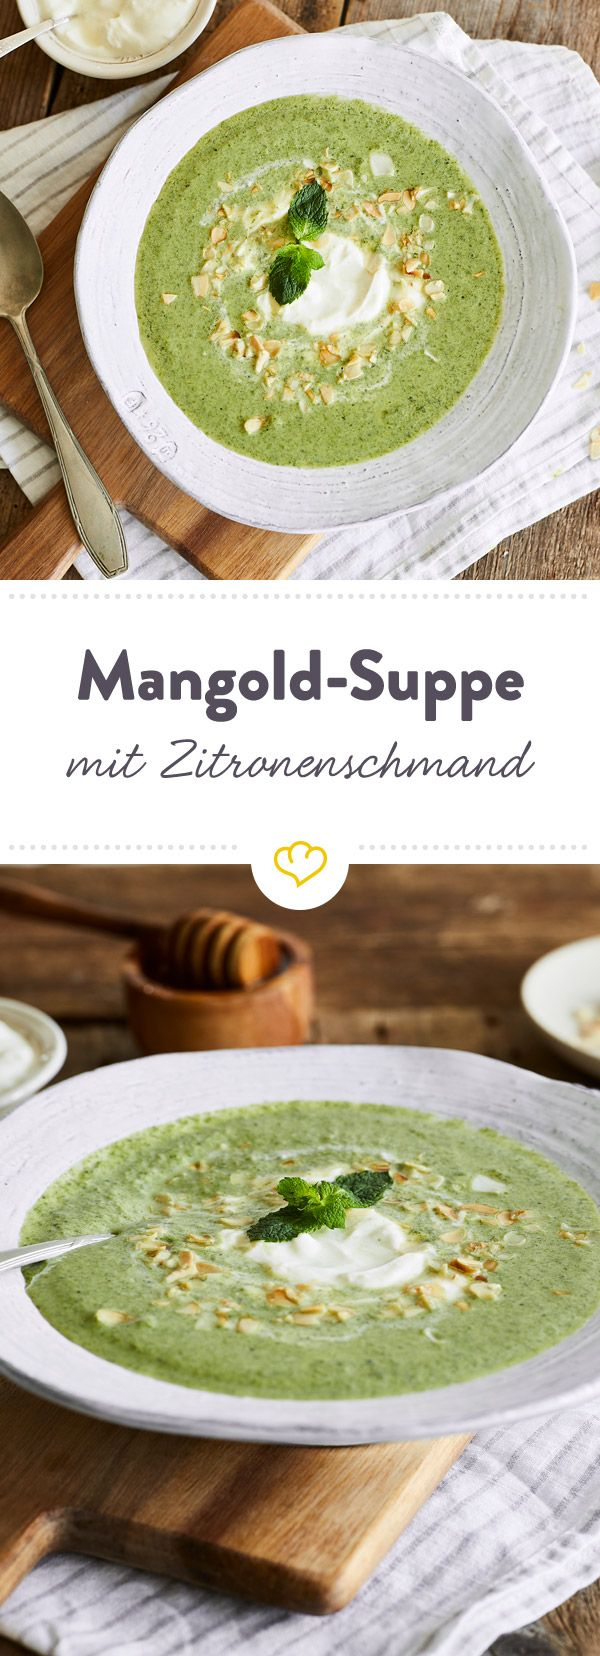 cremige mangold suppe mit minze und zitronenschmand rezept was soll ich kochen suppen. Black Bedroom Furniture Sets. Home Design Ideas